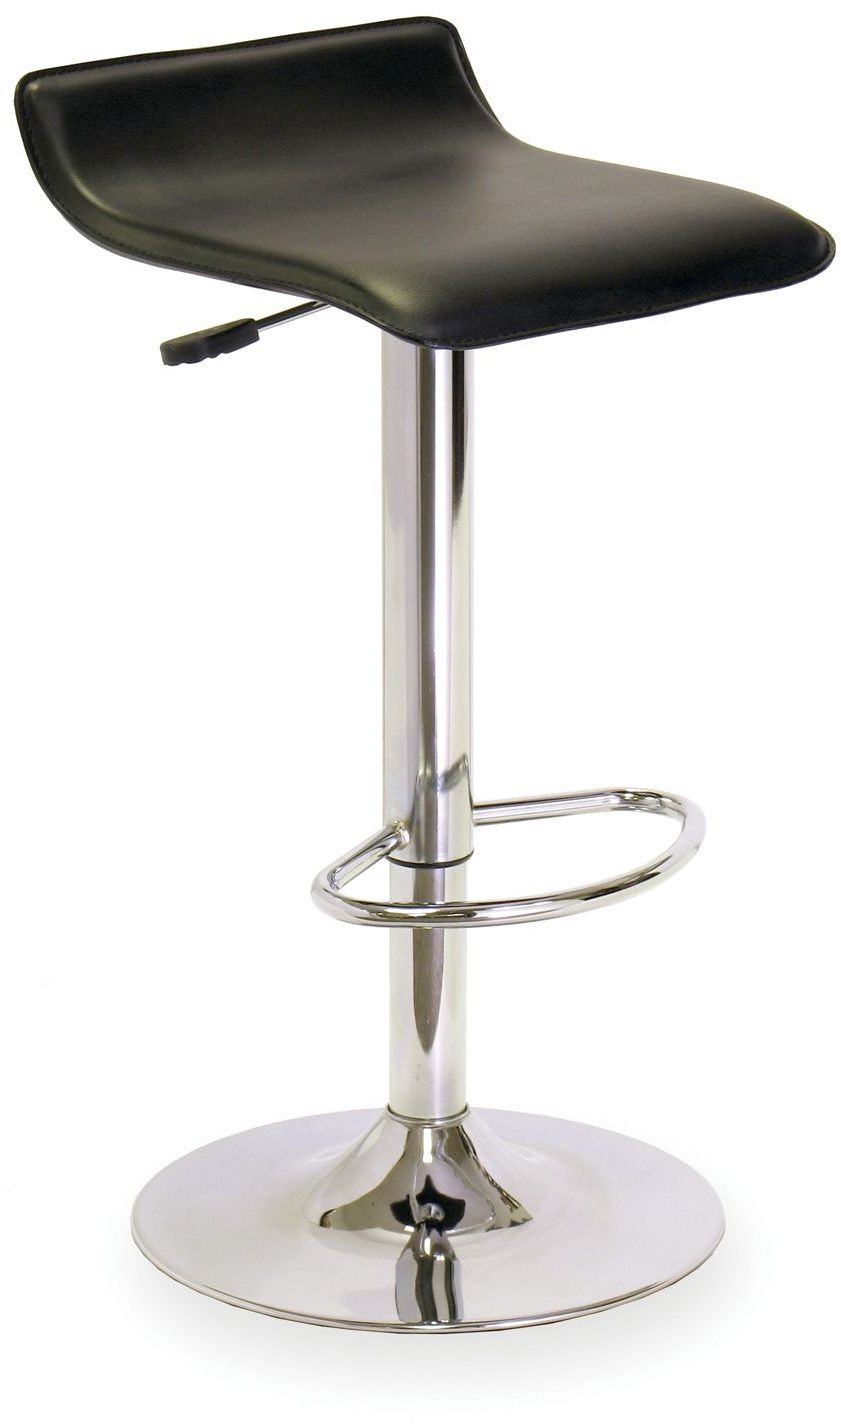 Spectrum Black Upholstered Airlift Swivel Stool 93129